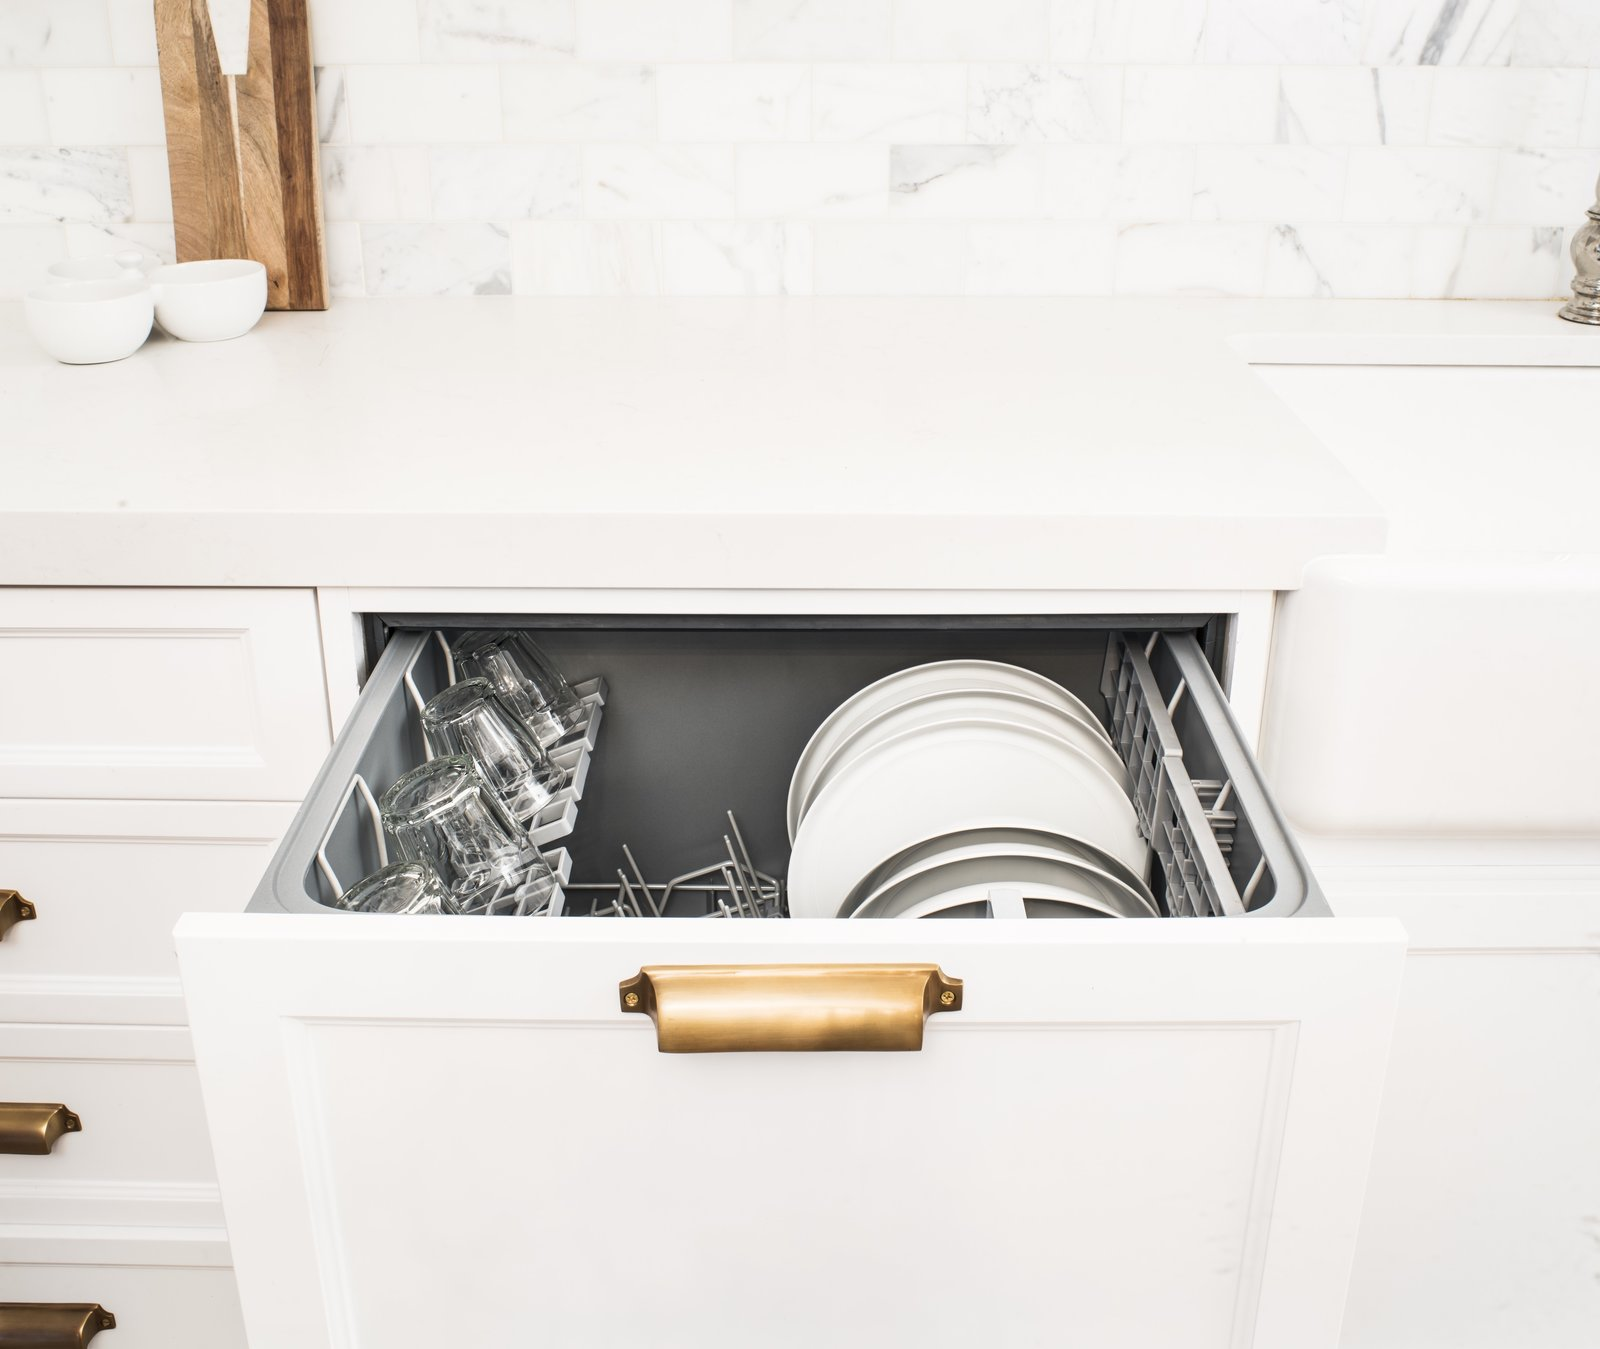 Nine wash cycles vary from delicate to heavy duty; a flow-through detergent dispenser and 163°F water help sanitize dishes.